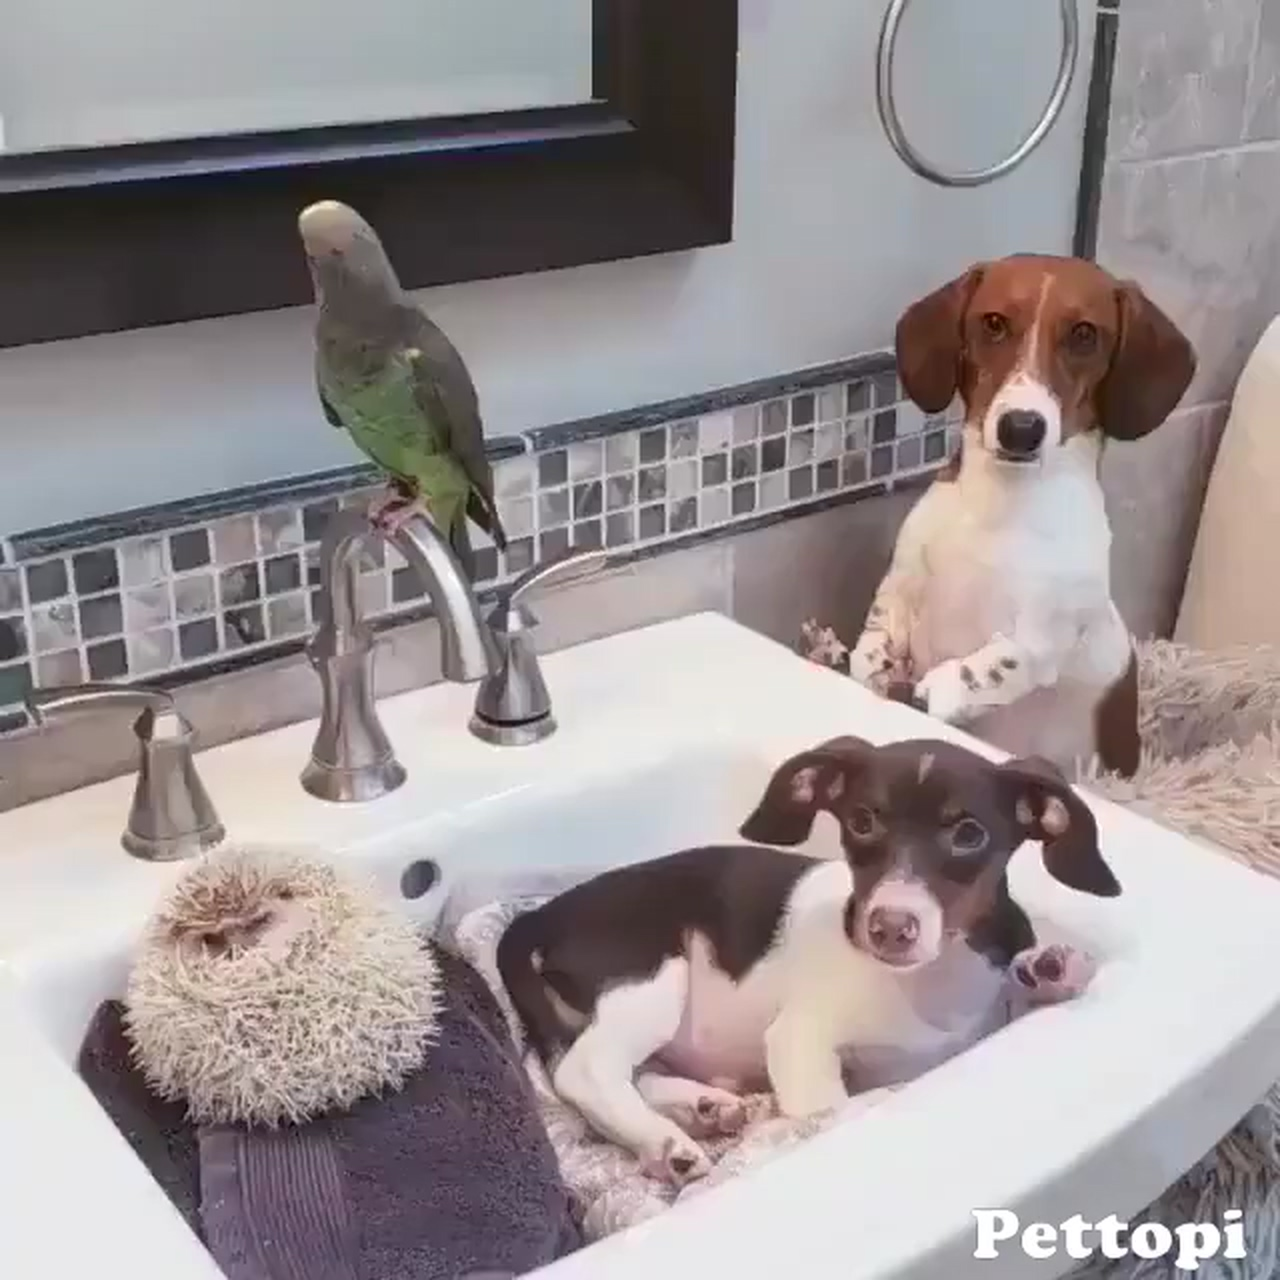 Dachshunds, parrot and Hedgehog